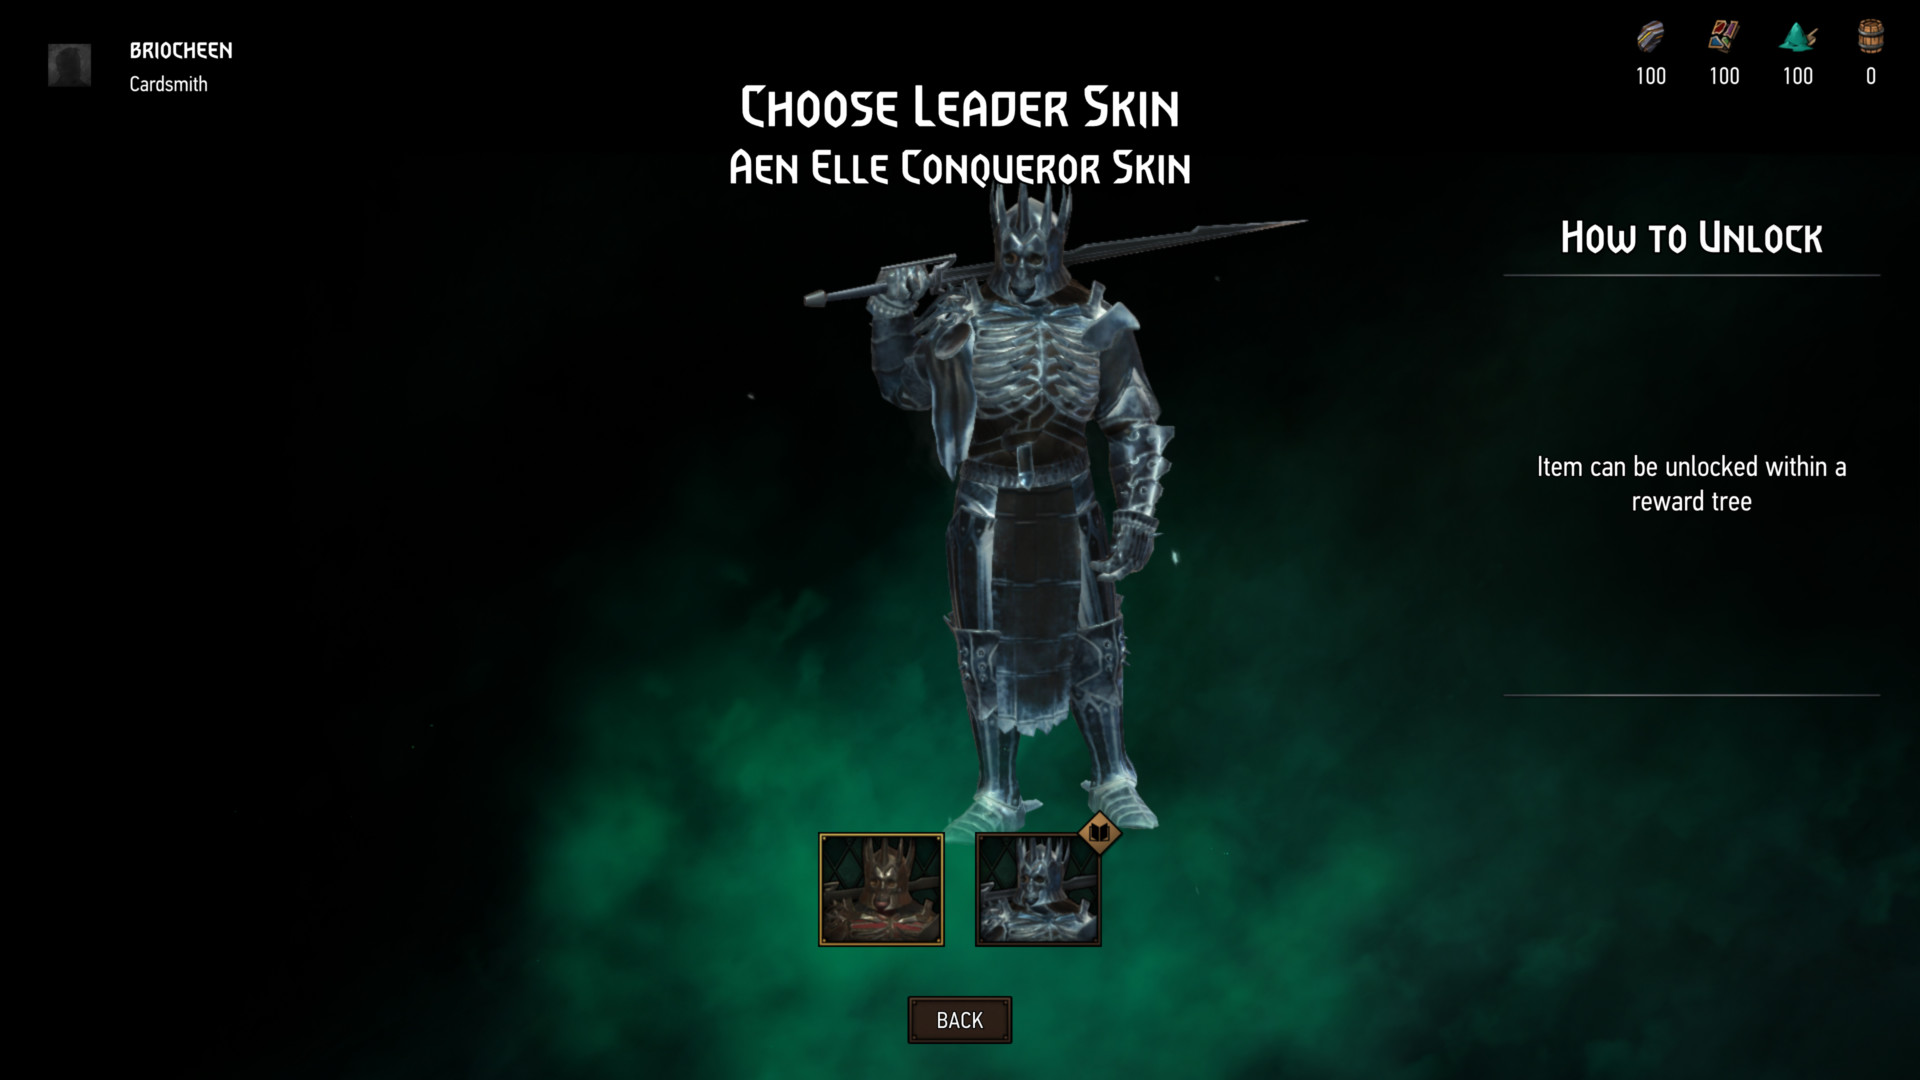 Choose leader skin screenshot of Gwent: The Witcher Card Game video game interface.